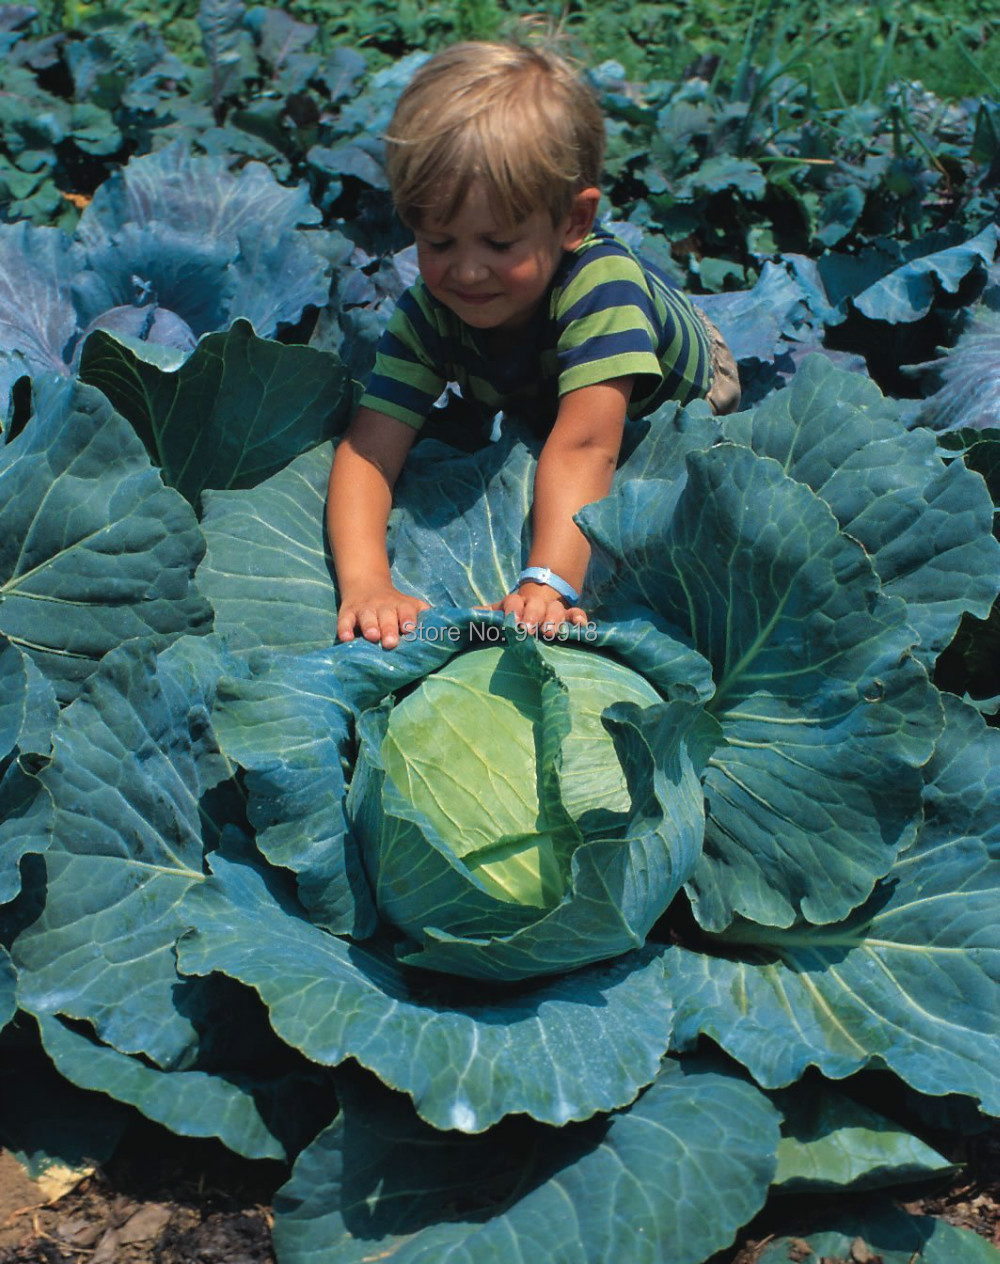 200pcs Giant Russian Cabbage Seeds Vegetable Seeds High Quality Vegetable Nice